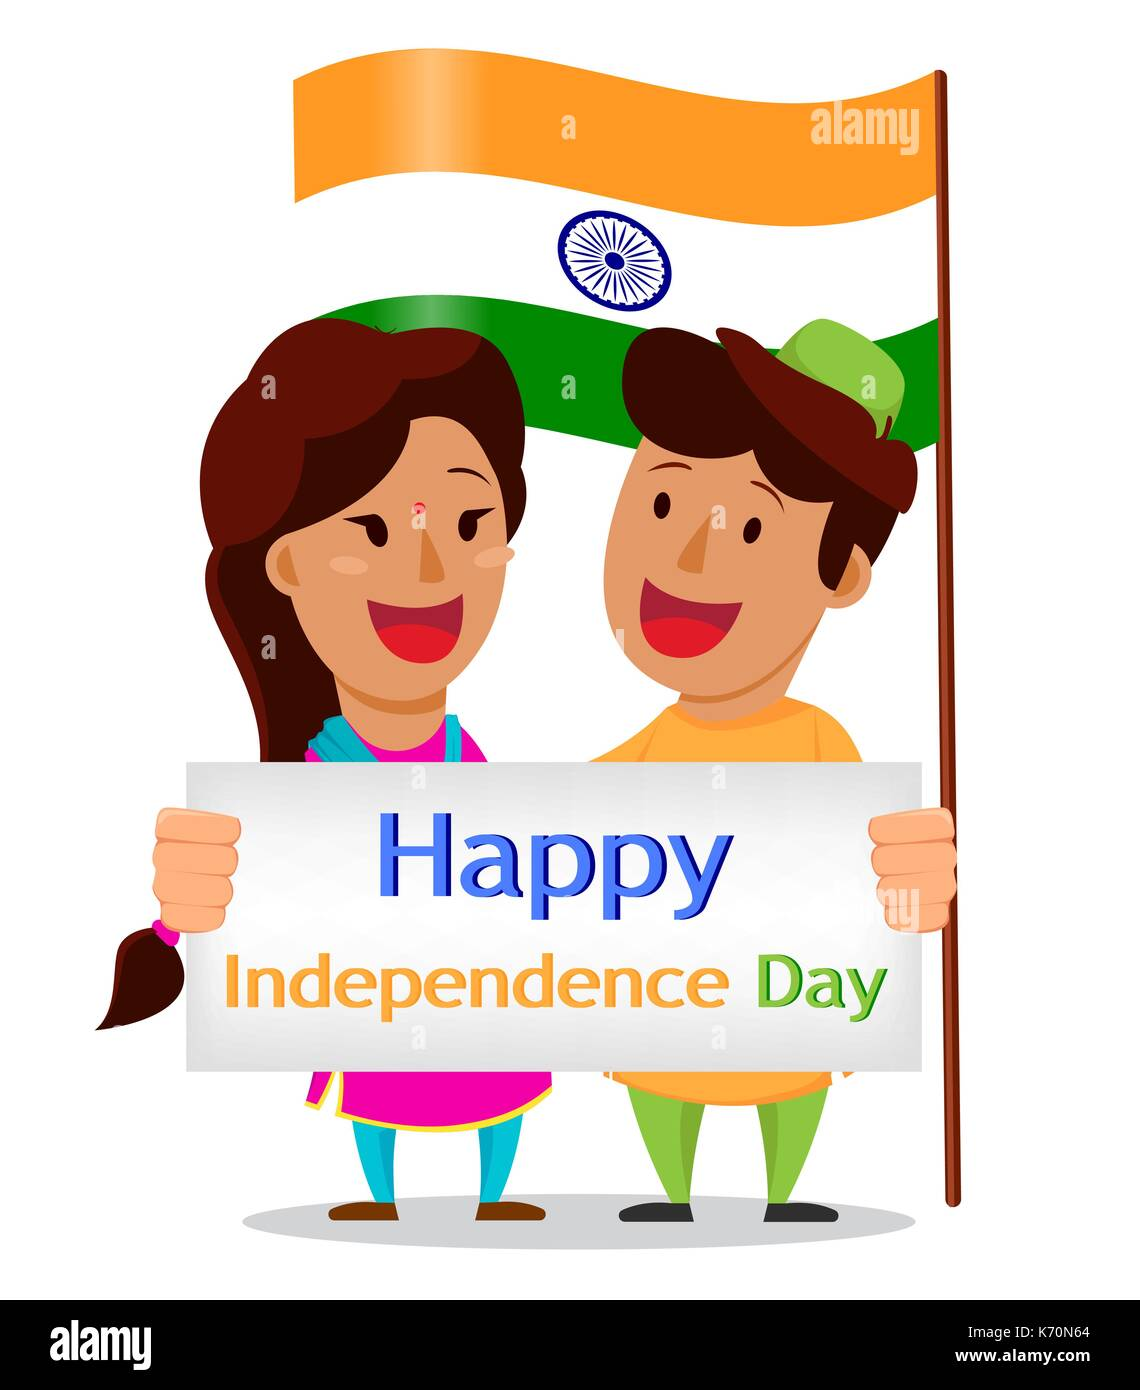 Independence Day In India Greeting Card With Funny Cartoon Stock